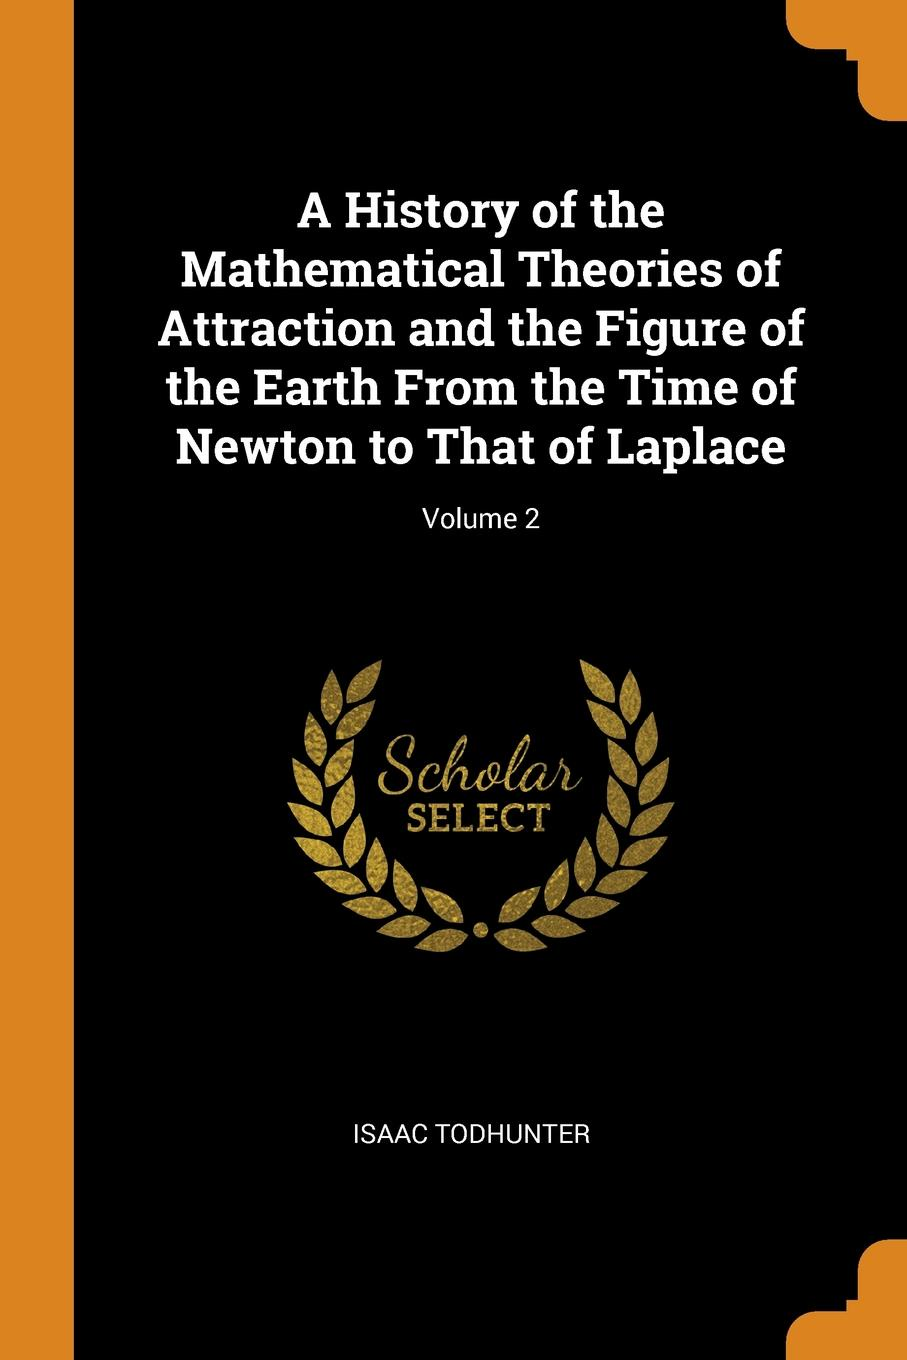 Isaac Todhunter A History of the Mathematical Theories of Attraction and the Figure of the Earth From the Time of Newton to That of Laplace; Volume 2